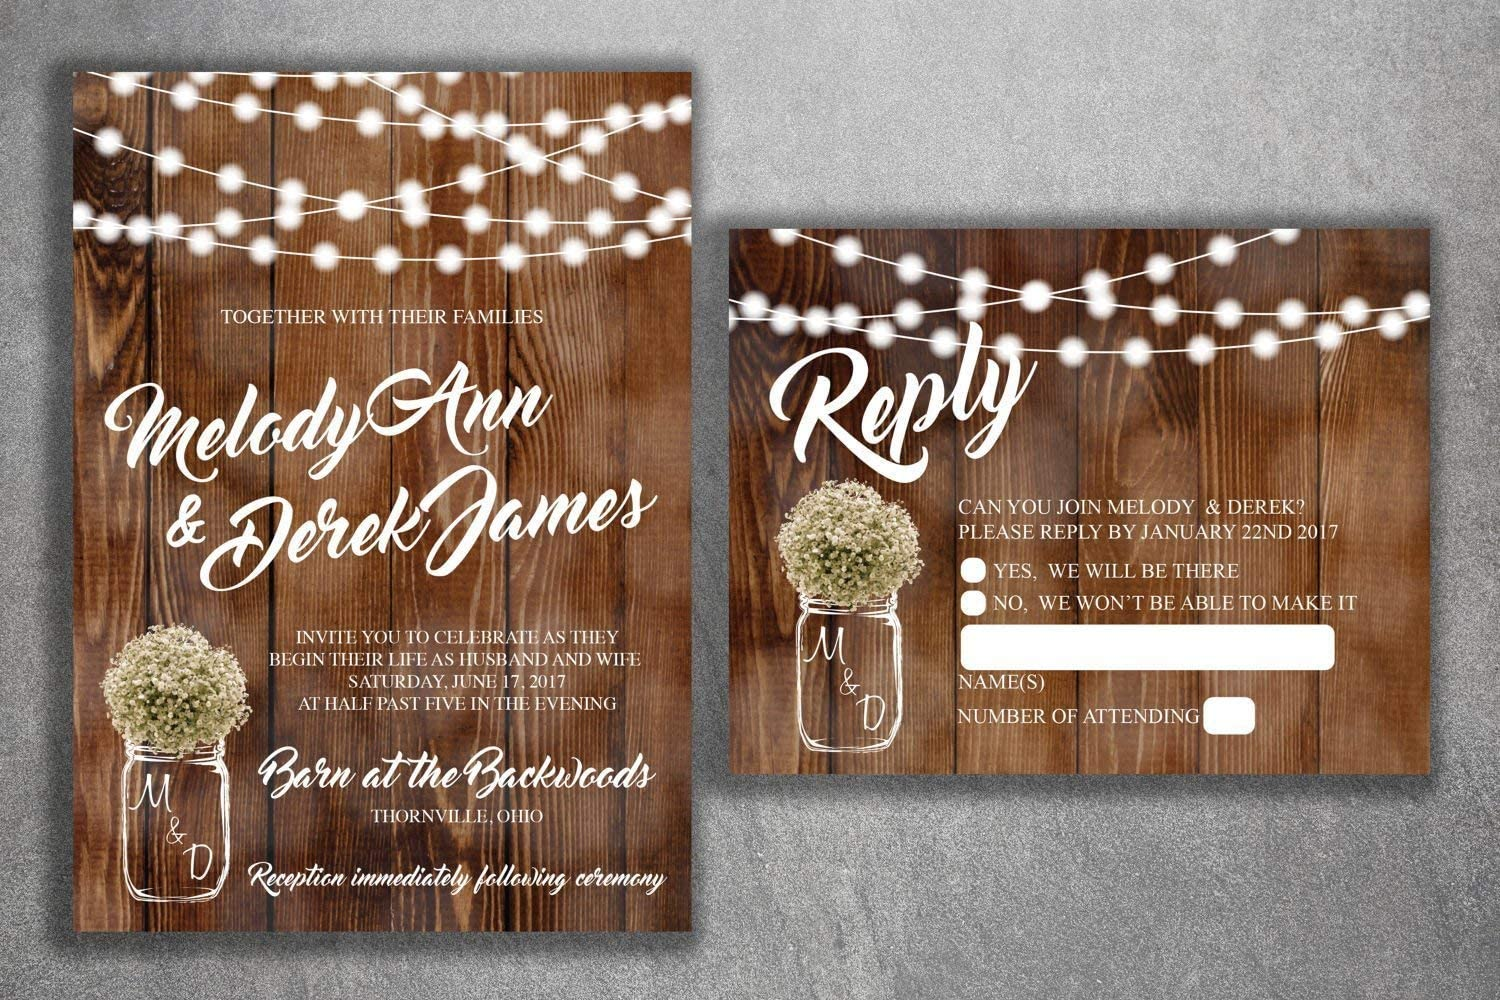 Rustic Wedding Invitations Country Theme Set With RSVP Cards and Extra Card Calla Lily Barrel Baby Breath Set of 80